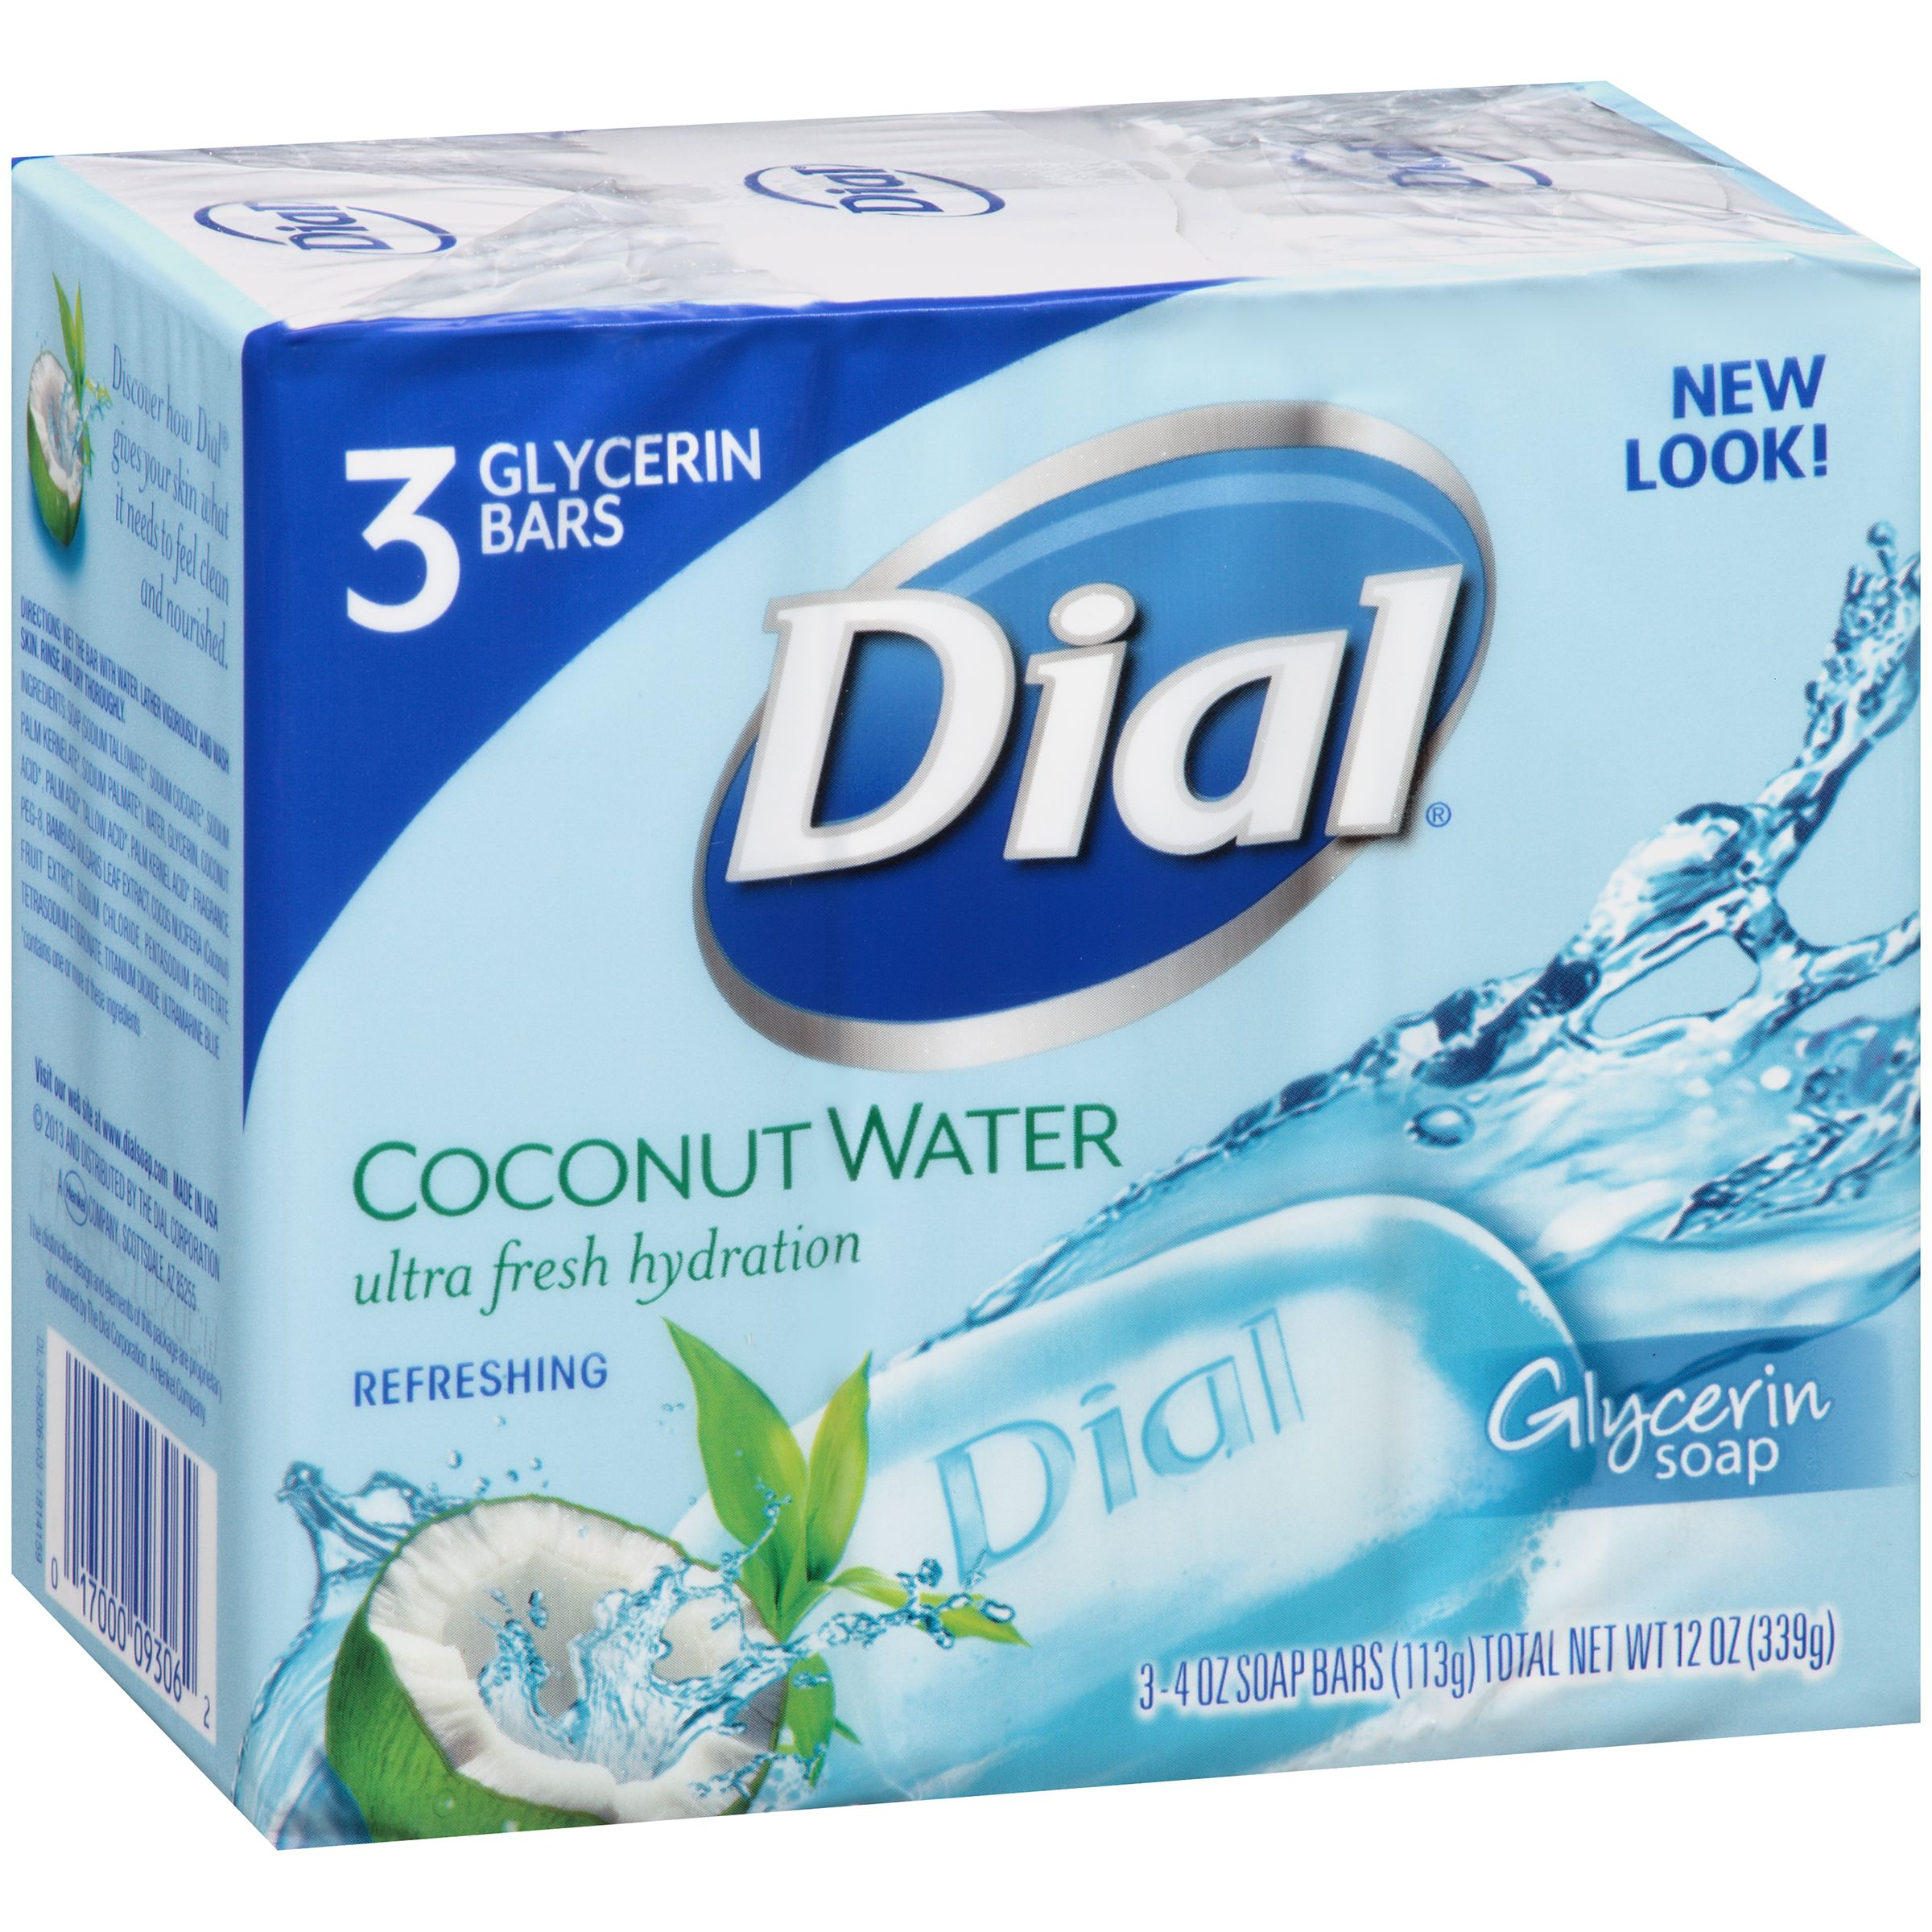 Dial Glycerin Bar Soap, Coconut Water, 4 Ounce Bars, 3 Count ...